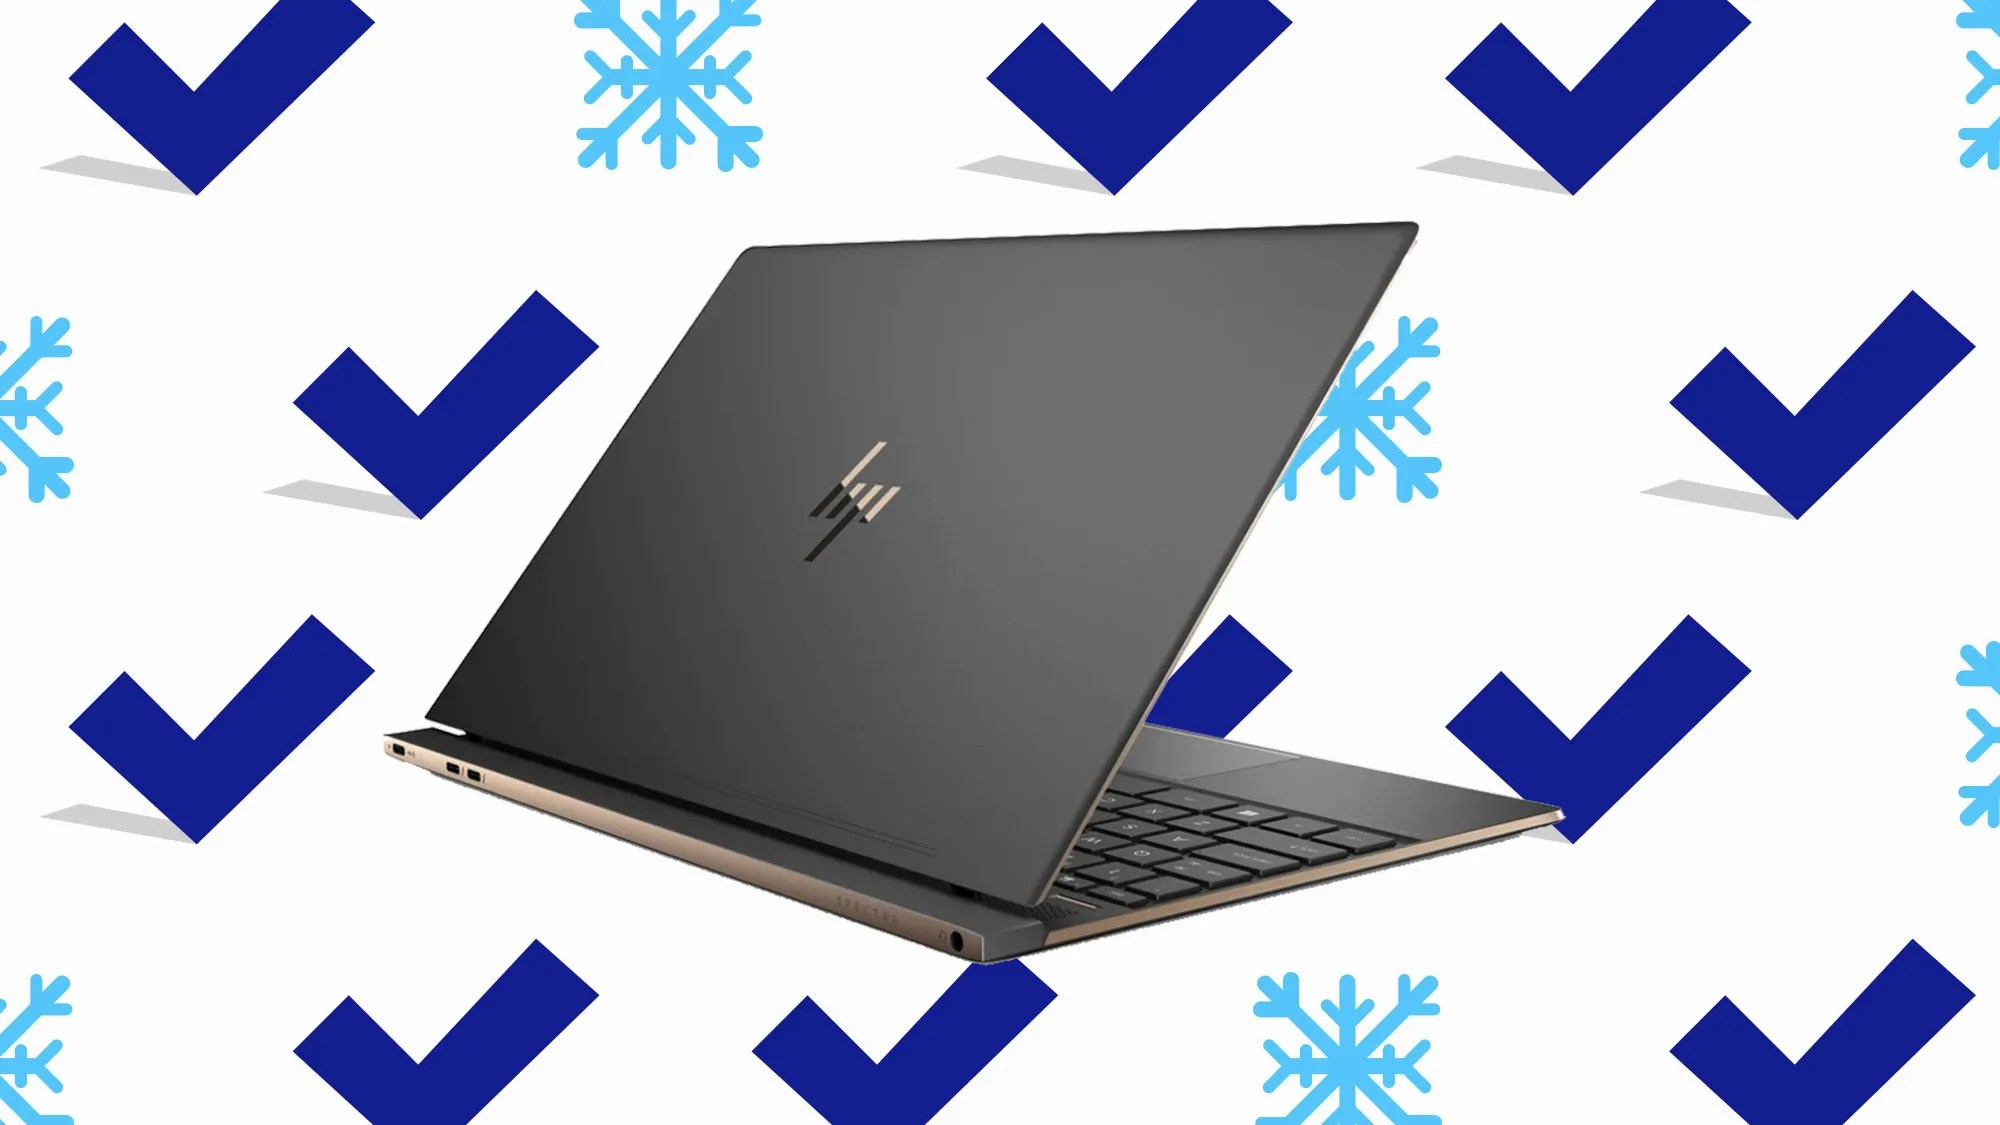 Save on top laptop brands including HP, Microsoft and more.